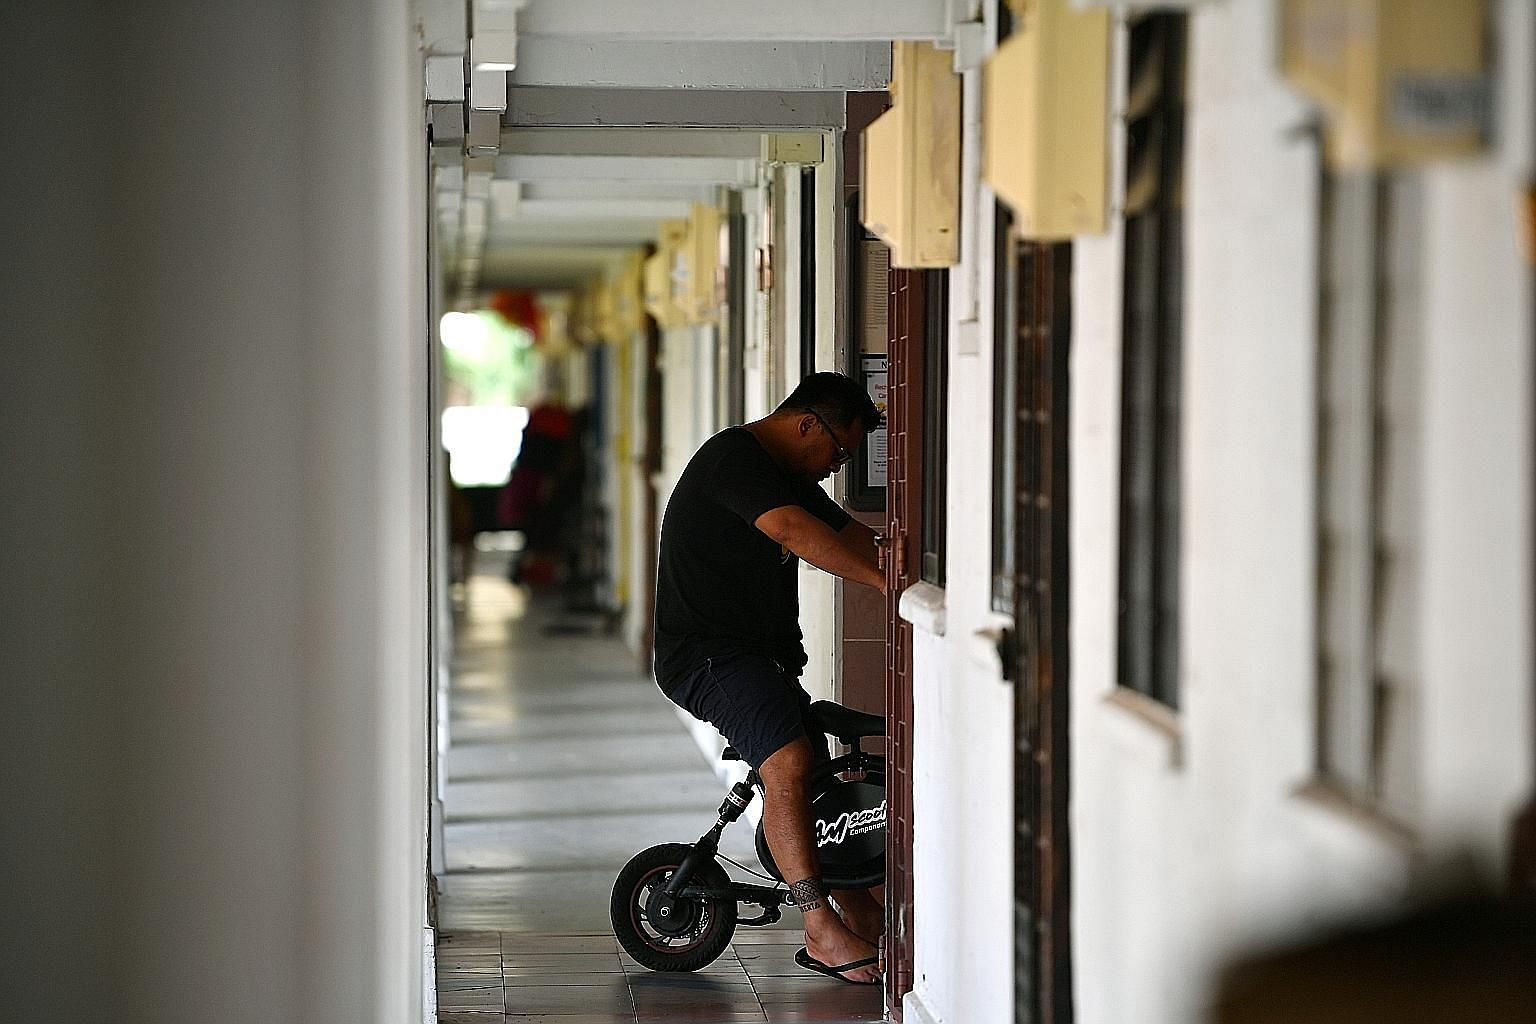 The rule banning the use of personal mobility devices, bicycles and power-assisted bicycles covers HDB common areas such as void decks, playgrounds, common corridors and play courts in estates. The town councils had said earlier that there will be a